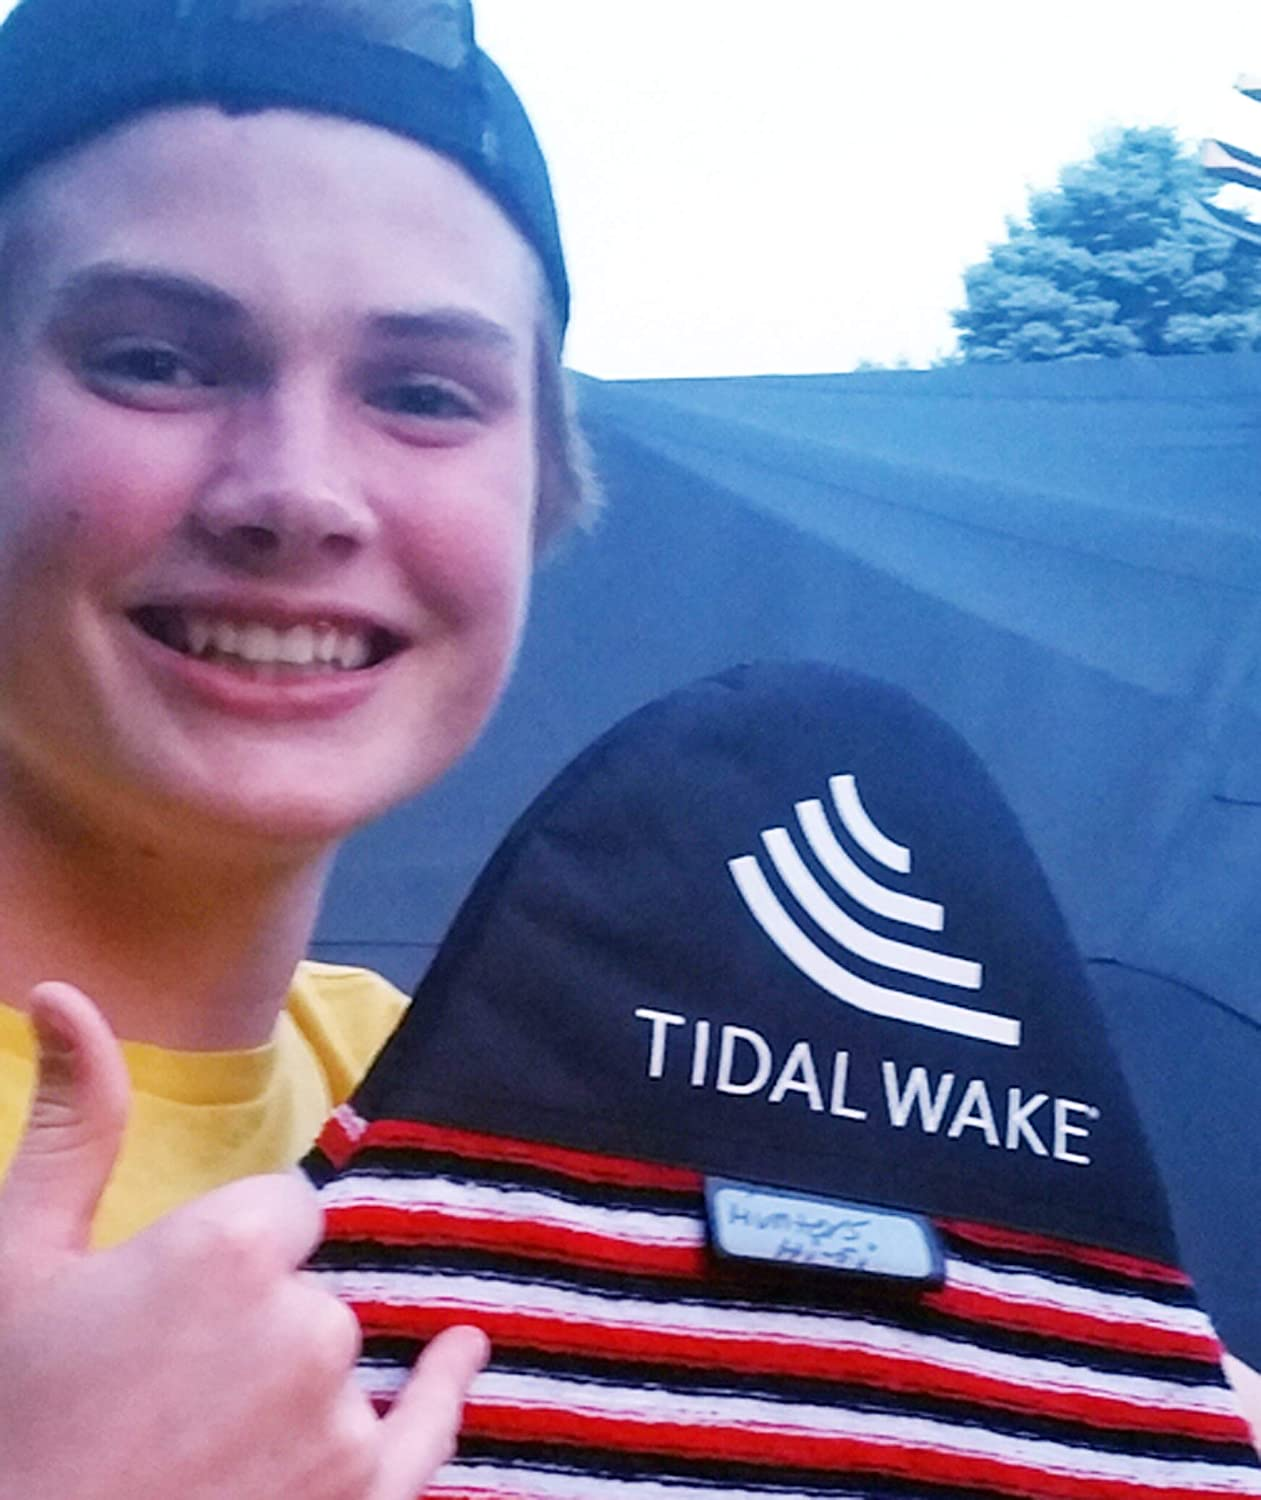 """Tidal Wake TAG-IT Pointed Nose Surf & Wake Board Sock Bag with Built-in Name Tag, Personalize - Small 52-53\"""", Tag Your Bag (Green & Blue Striped)"""